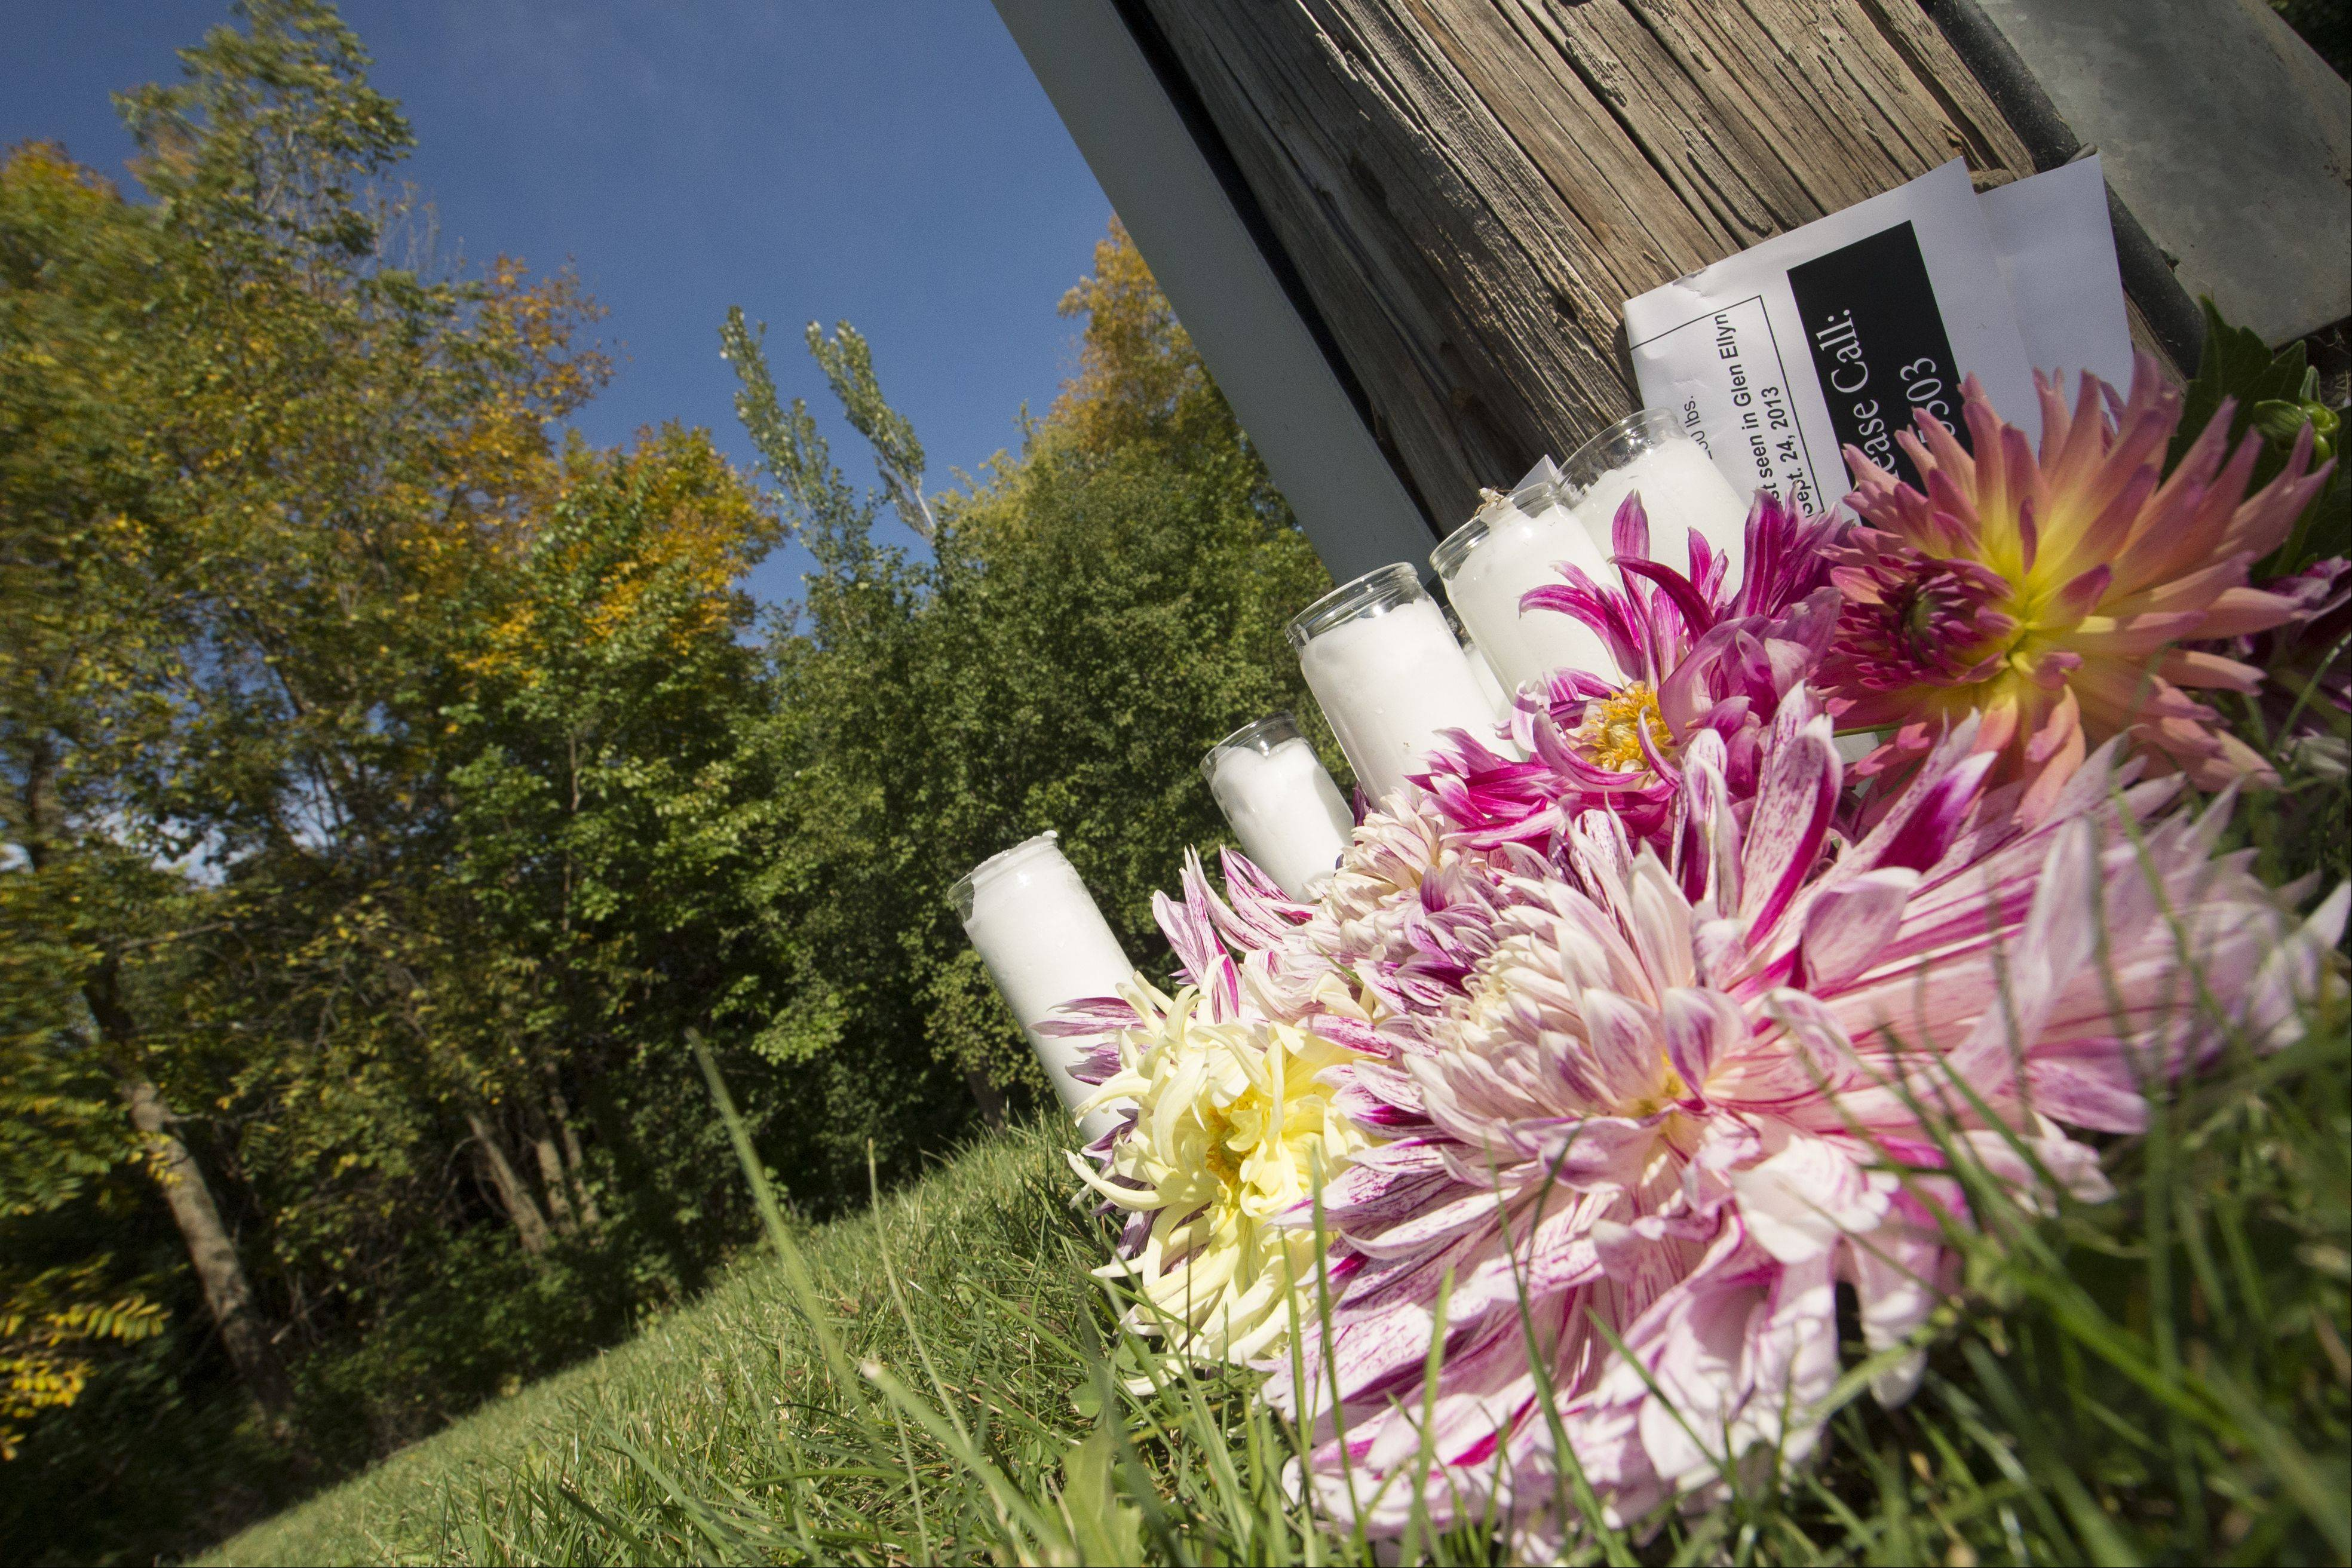 A small memorial sits in the wooded area of Glen Ellyn's Panfish Park where Linda Valez, 33, was found buried in a shallow grave early Saturday.